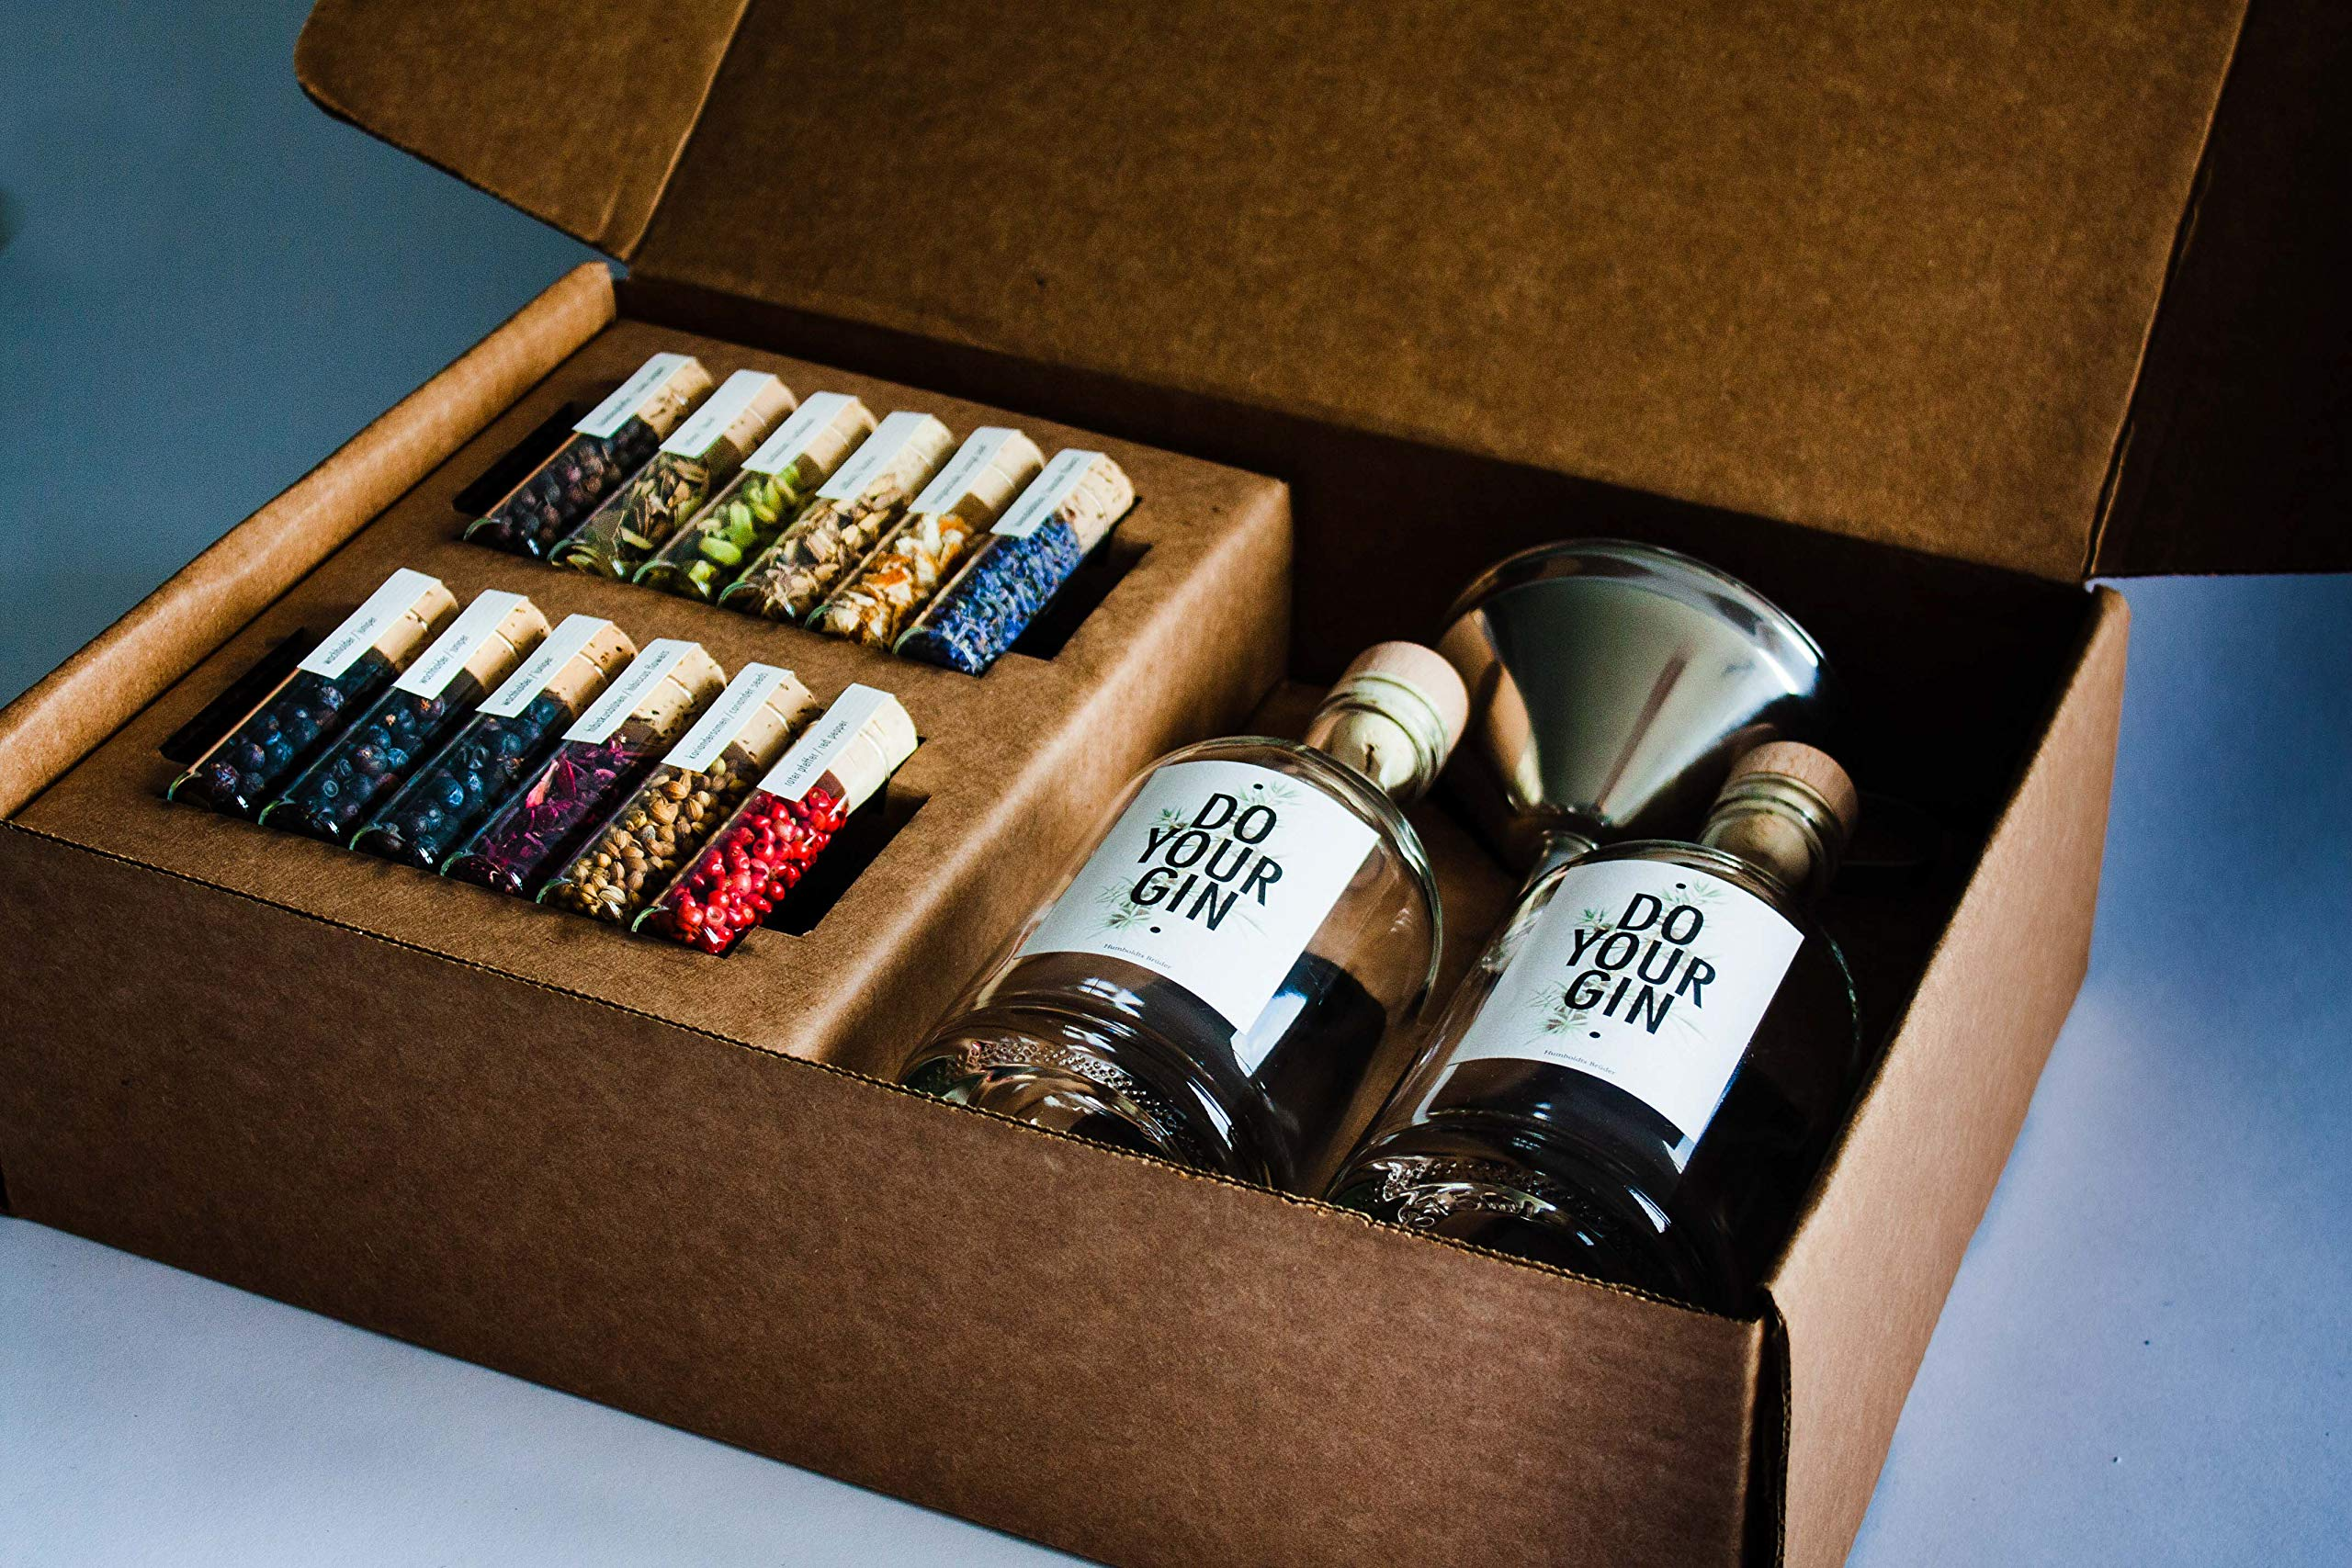 DO YOUR GIN Gin Making Kit - Homemade, Infusion, No-Distilling Recipe with Vodka and 10 Botanicals - Experiment and Create Your Own with Spices in 12 Glass Tubes - Best DIY Gift Kits for Men and Women